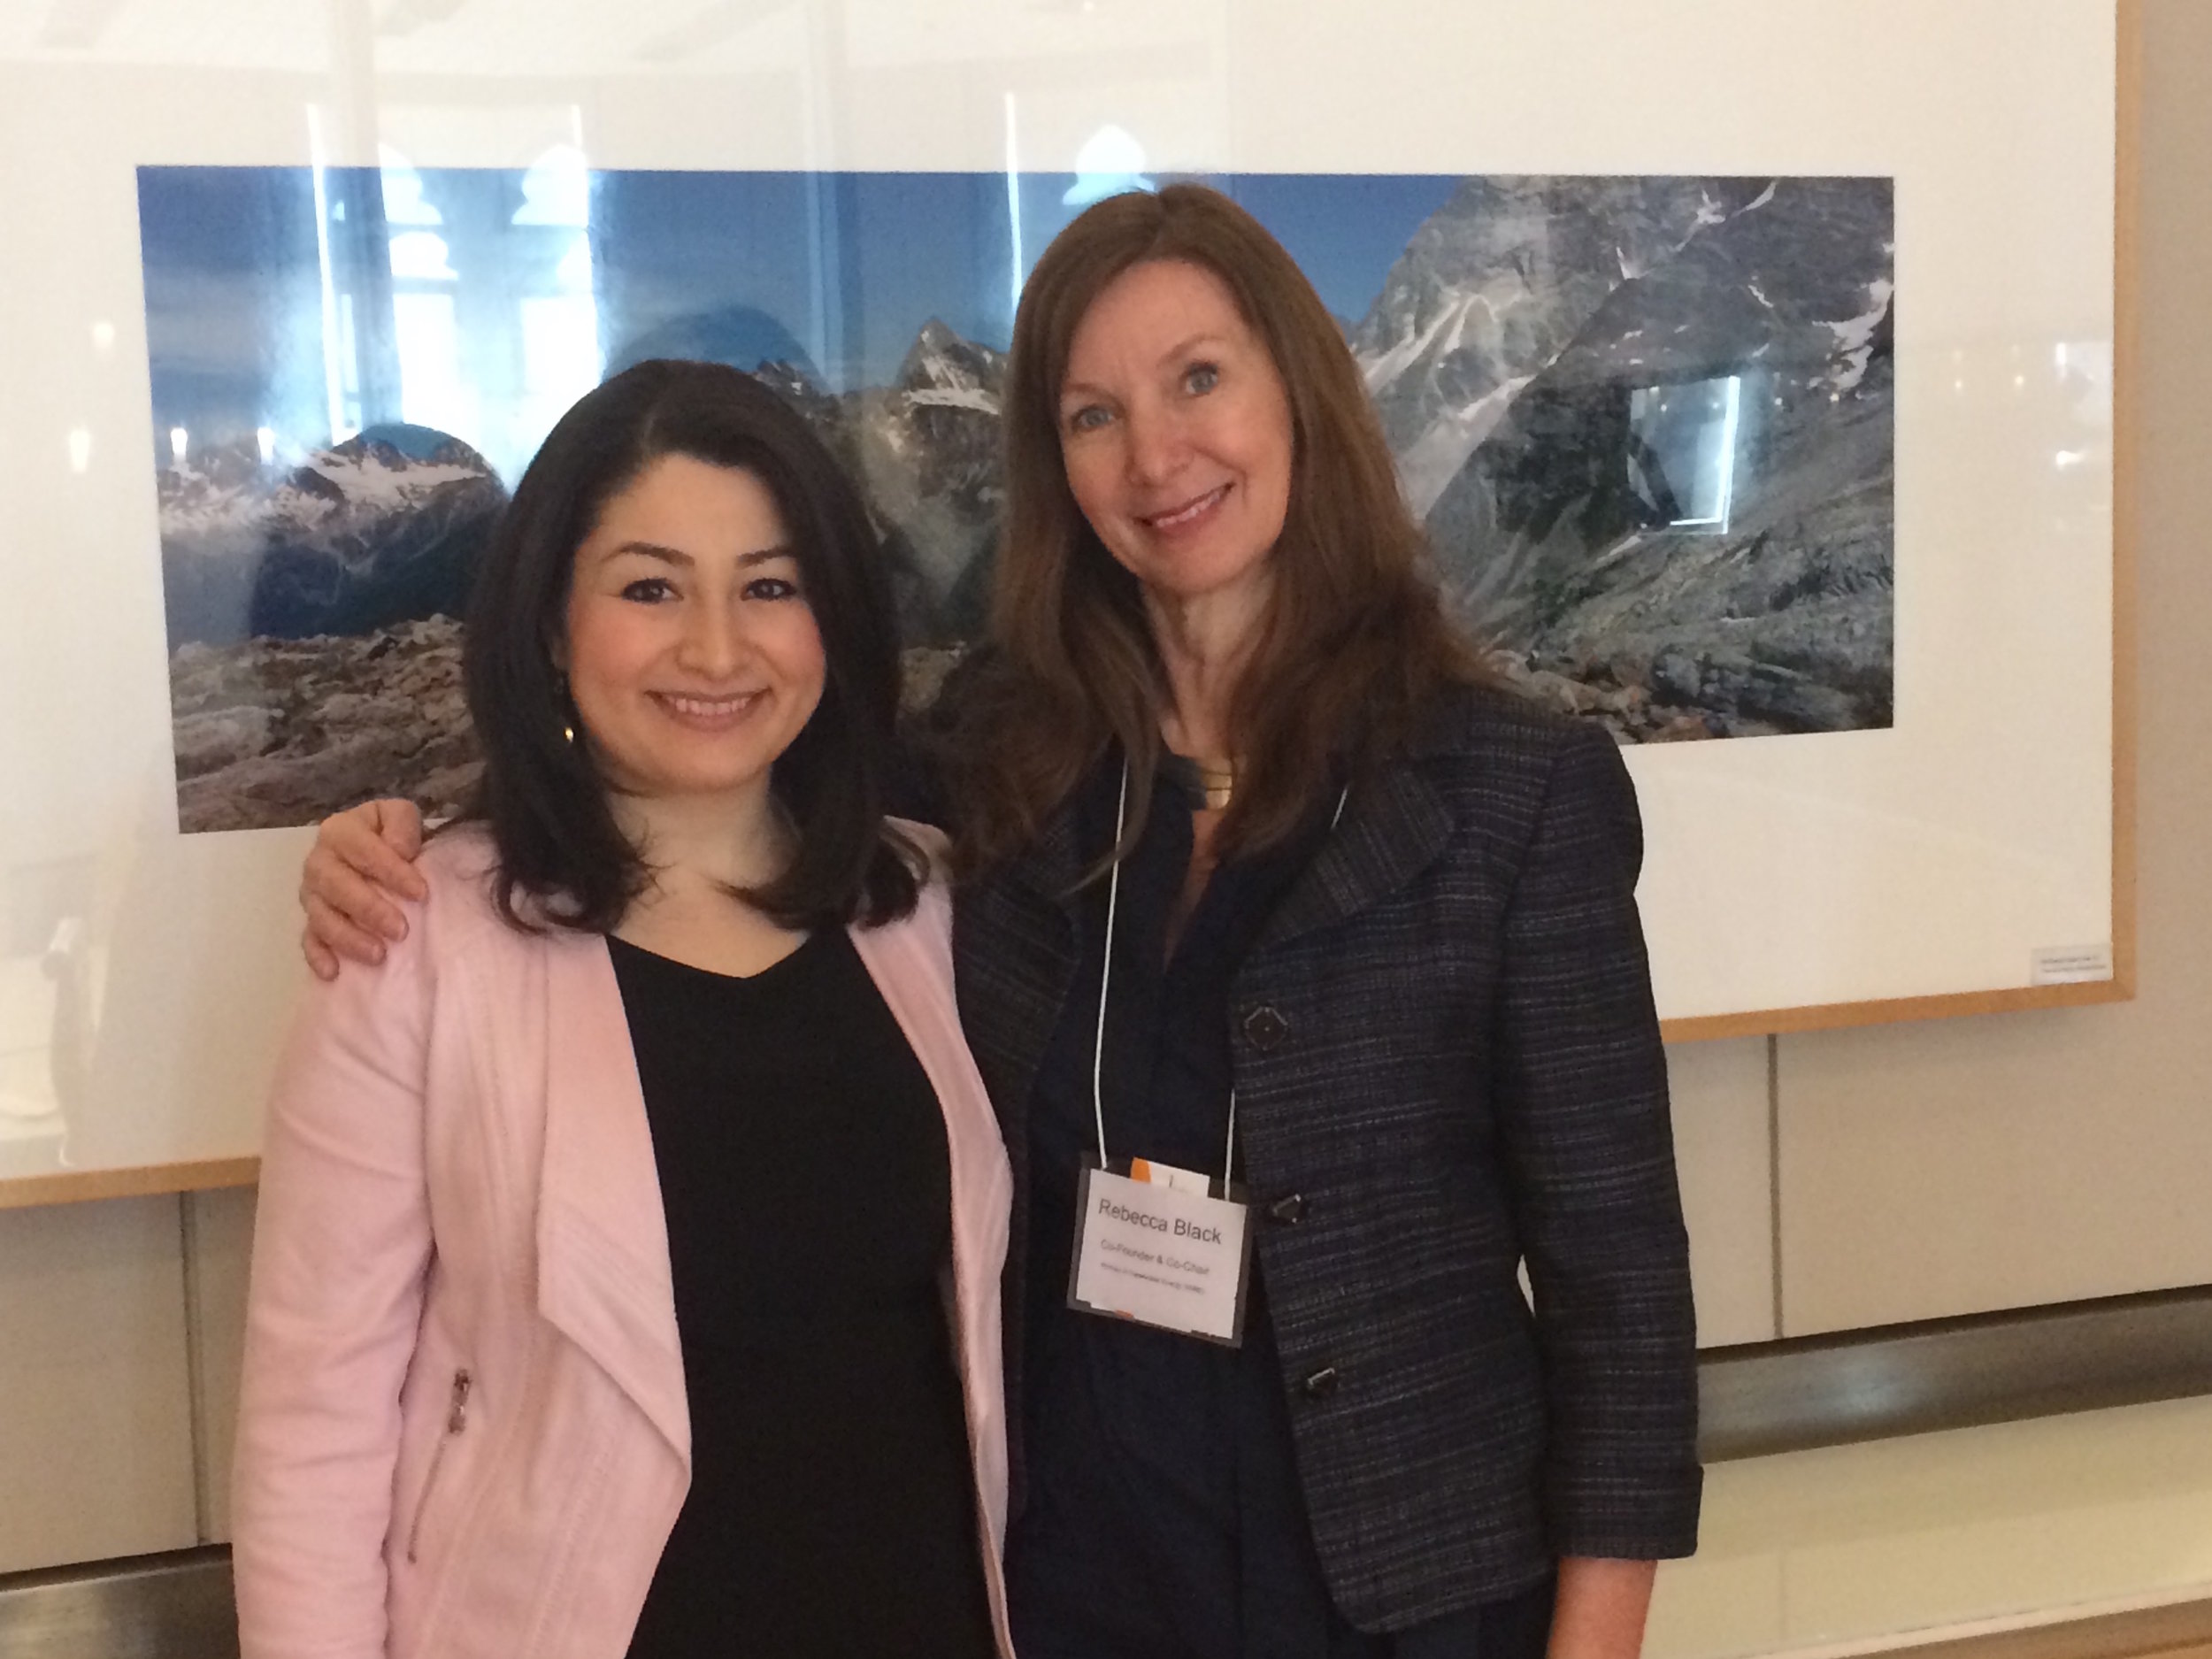 Minister for Status of Women, the Honourable Maryam Monsef with WiRE Co-Founder Rebecca Black at the announcement of the EHRC's Leadership Accord for Gender Diversity on International Women's Day 2017.